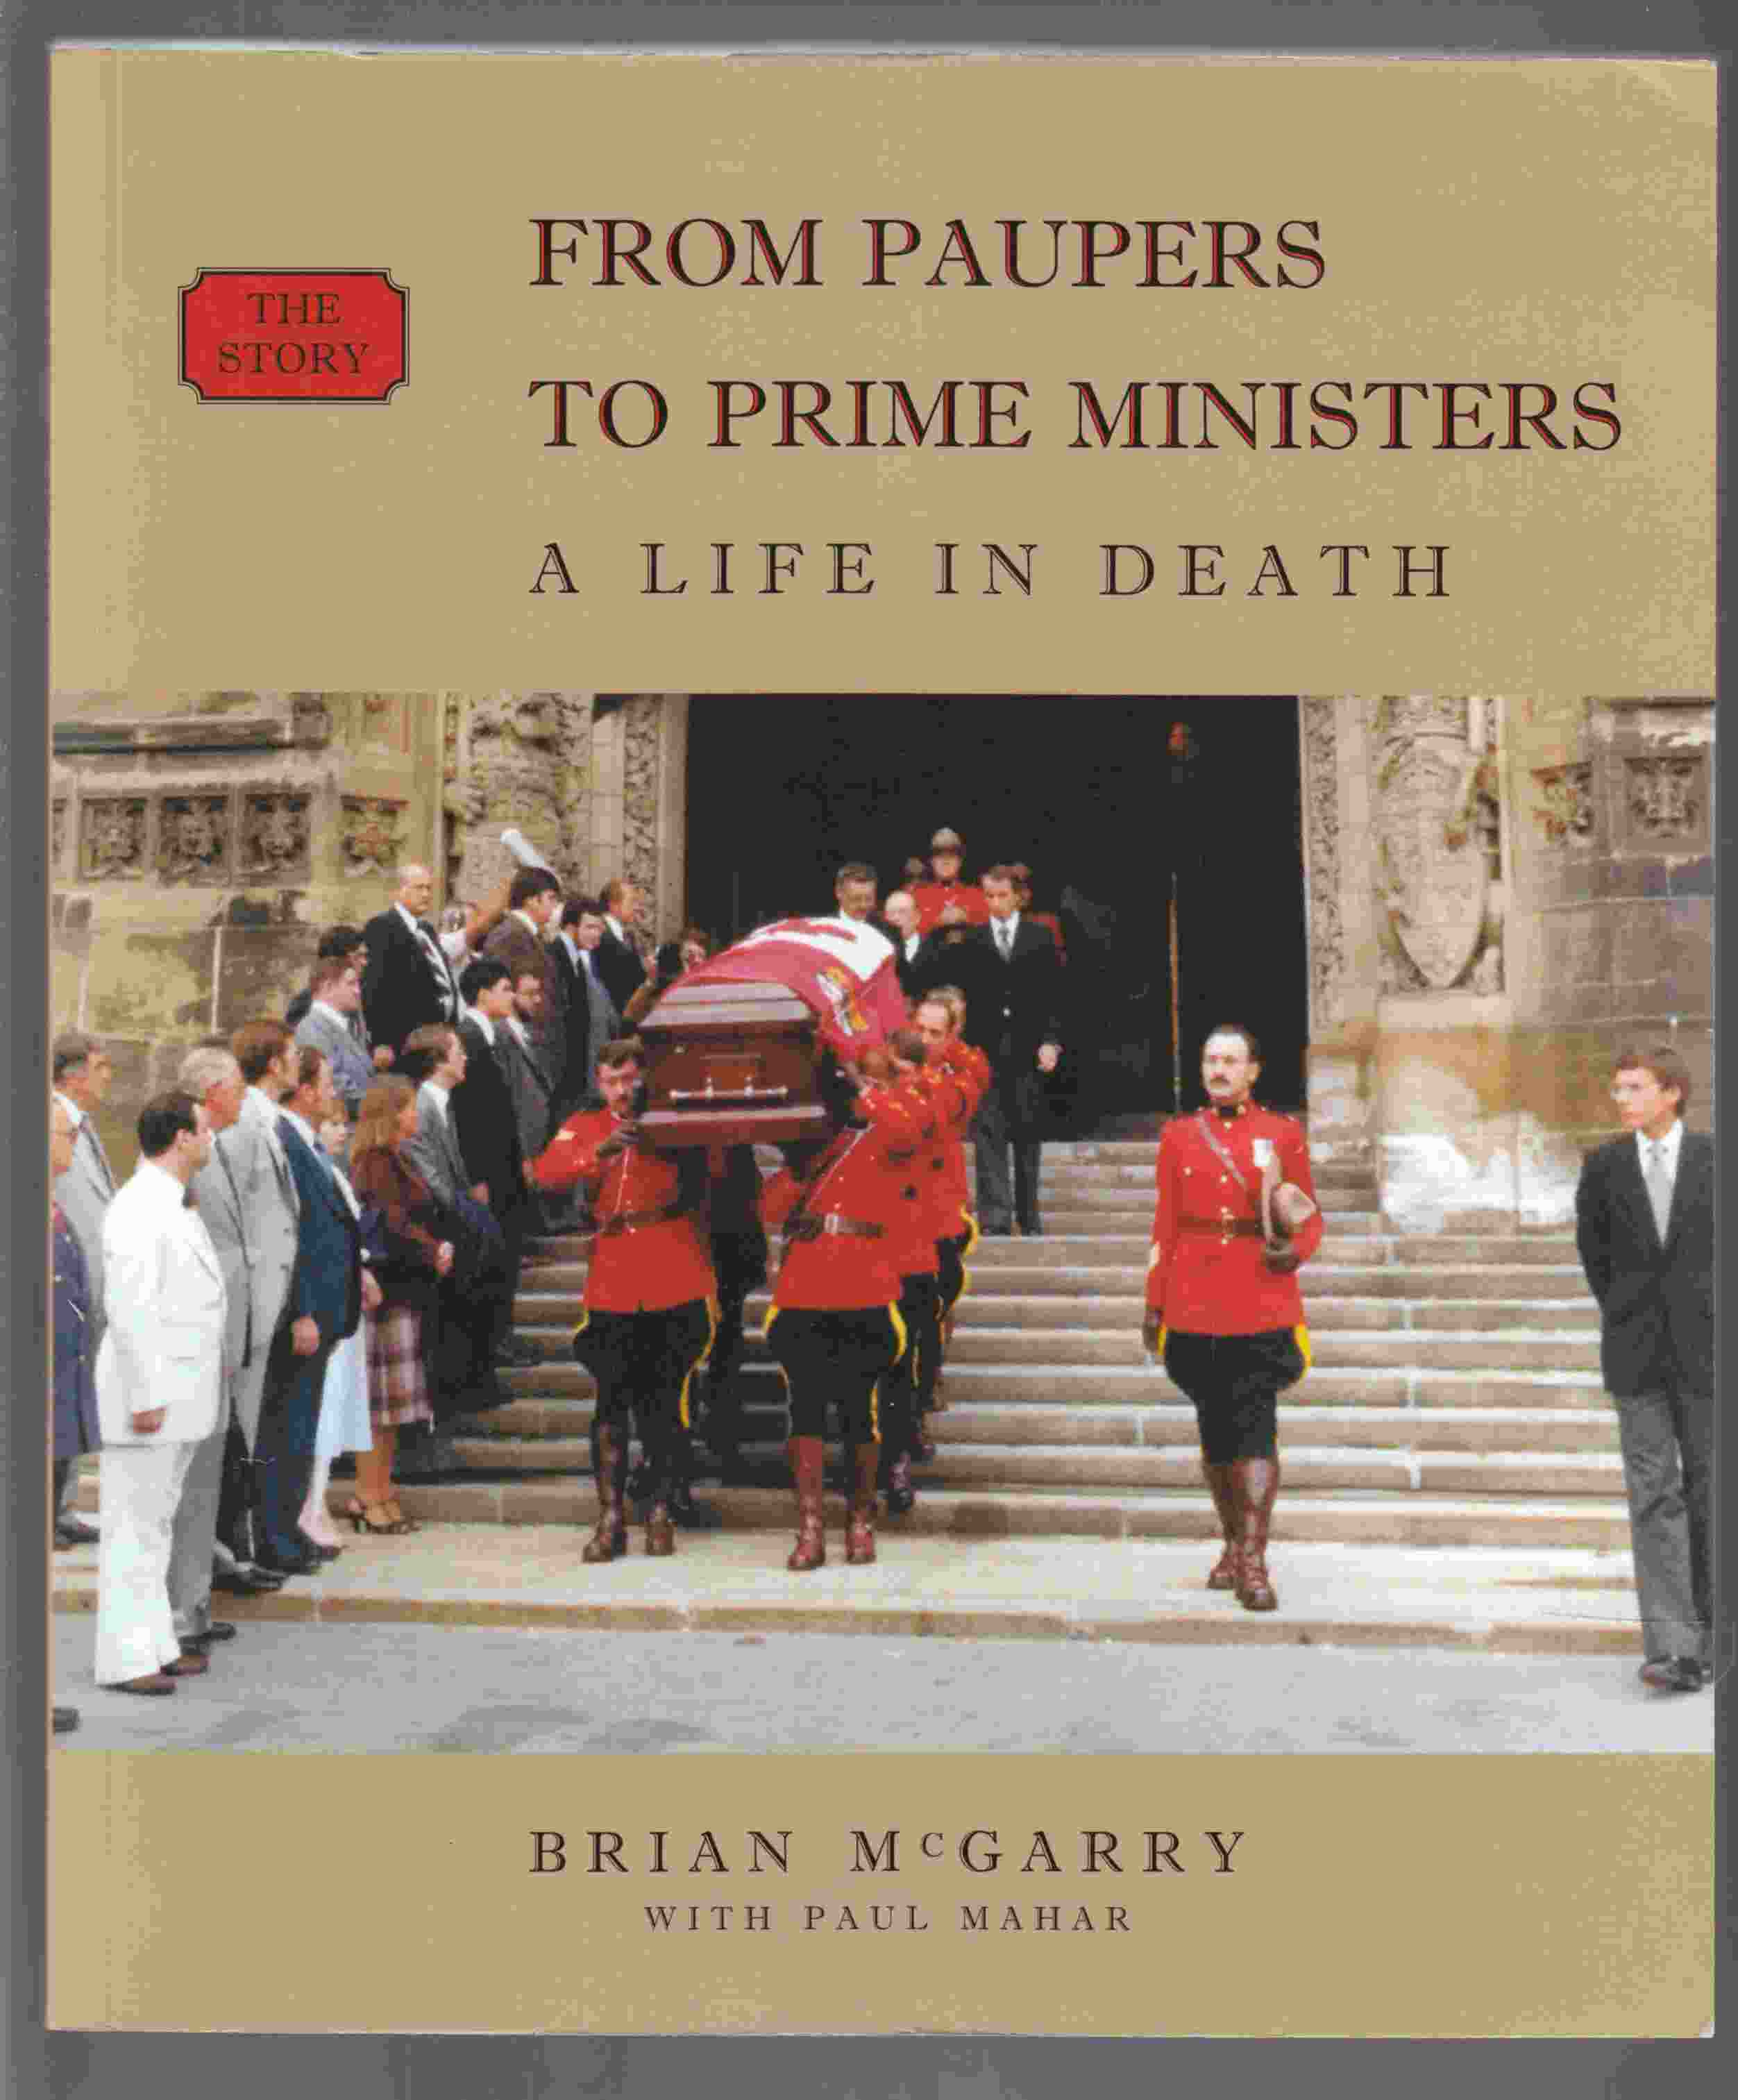 Image for From Paupers to Prime Ministers A Life in Death - the Story